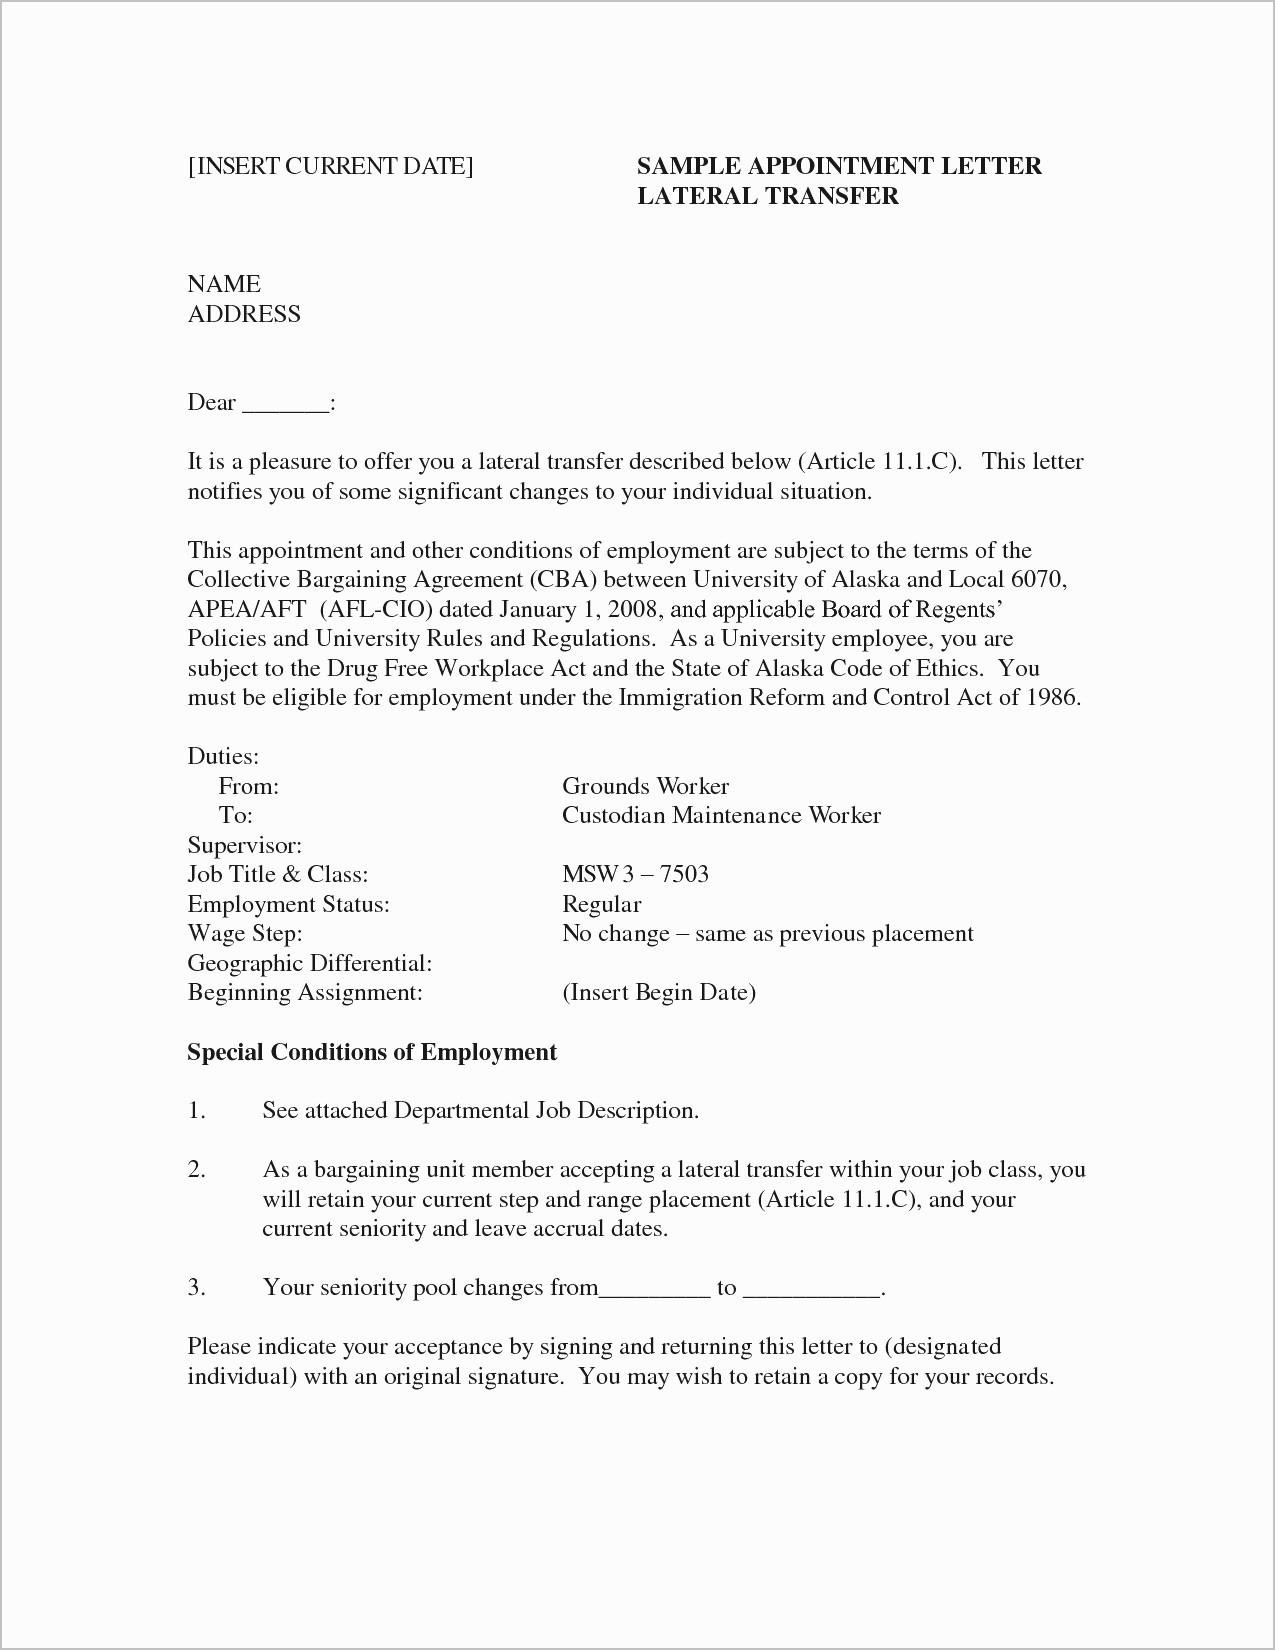 Sales Representative Resume - Sales Rep Resume Examples Inspirational Sales Resumes Examples Fresh